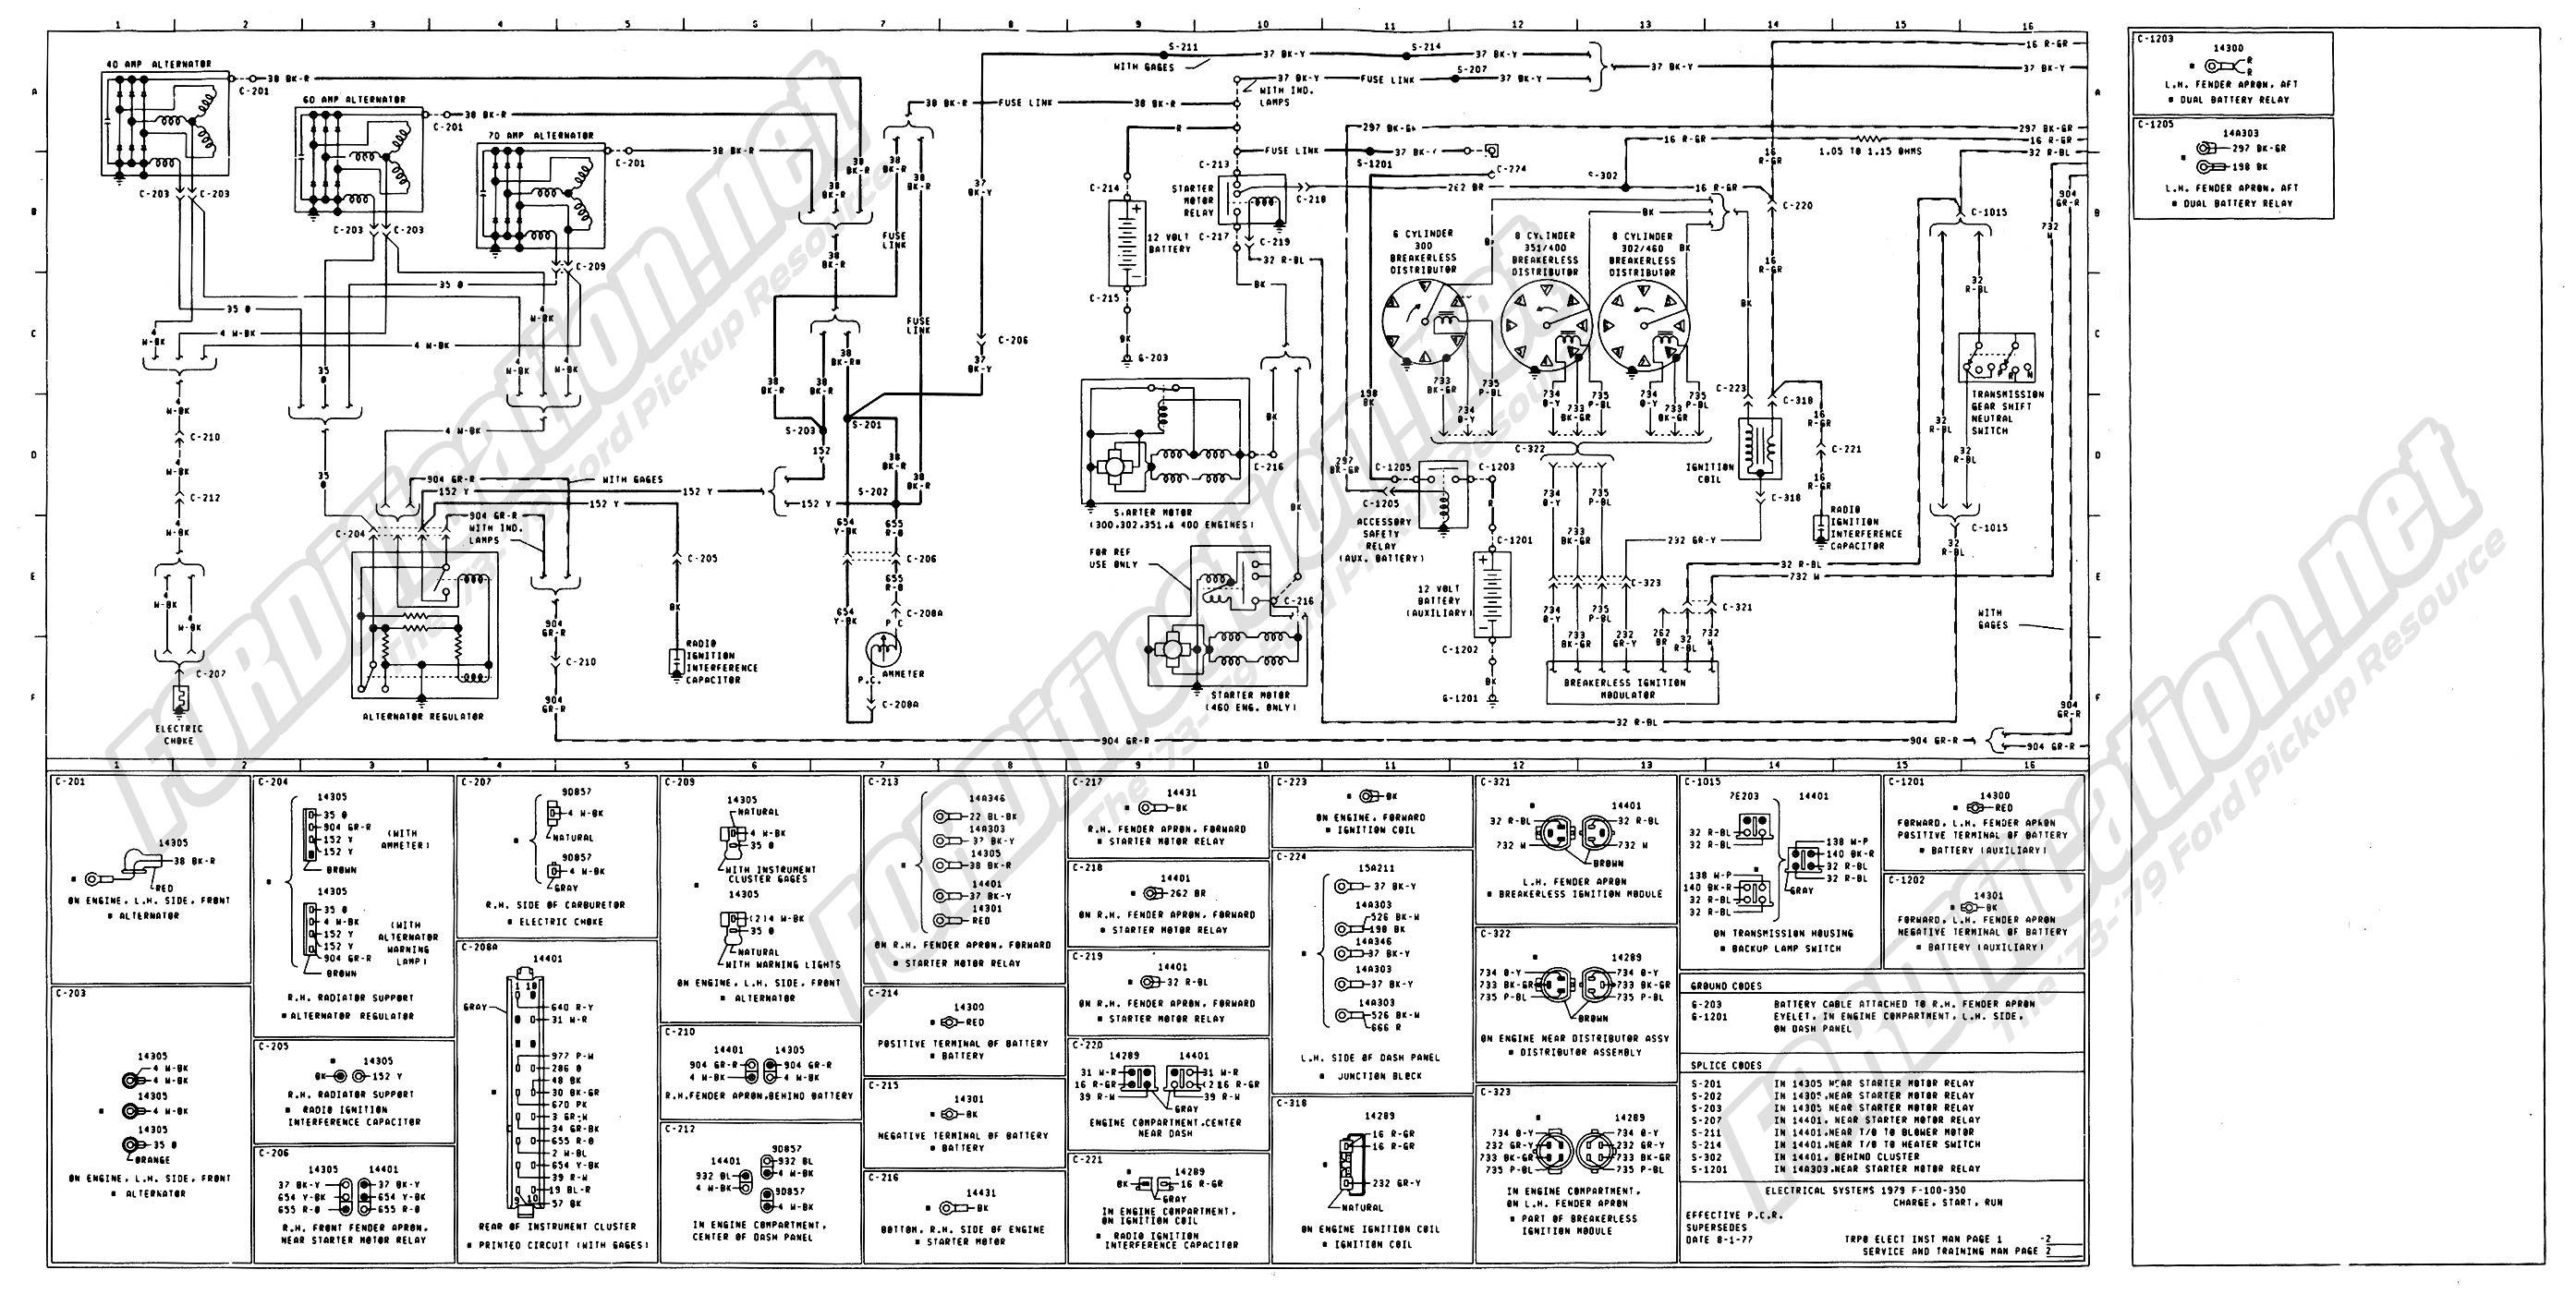 1995 ford f150 transmission wiring diagram 1973 1979 ford truck wiring diagrams   schematics fordification net  1973 1979 ford truck wiring diagrams